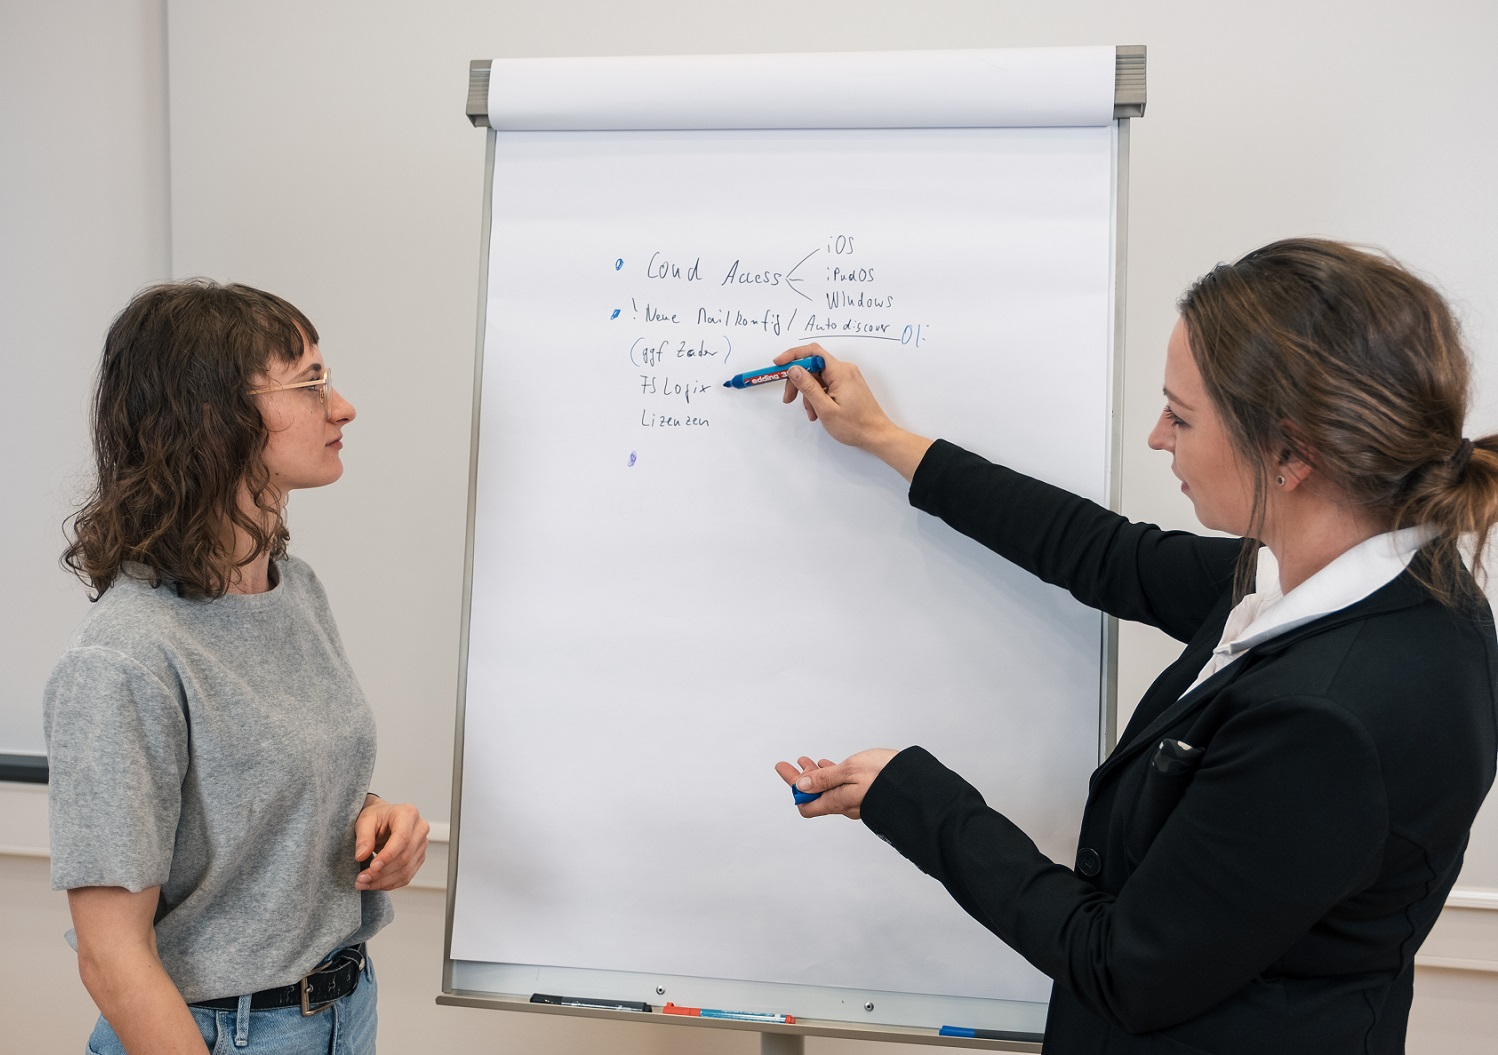 Dialog 2 Personen im IT-Workshop und Training